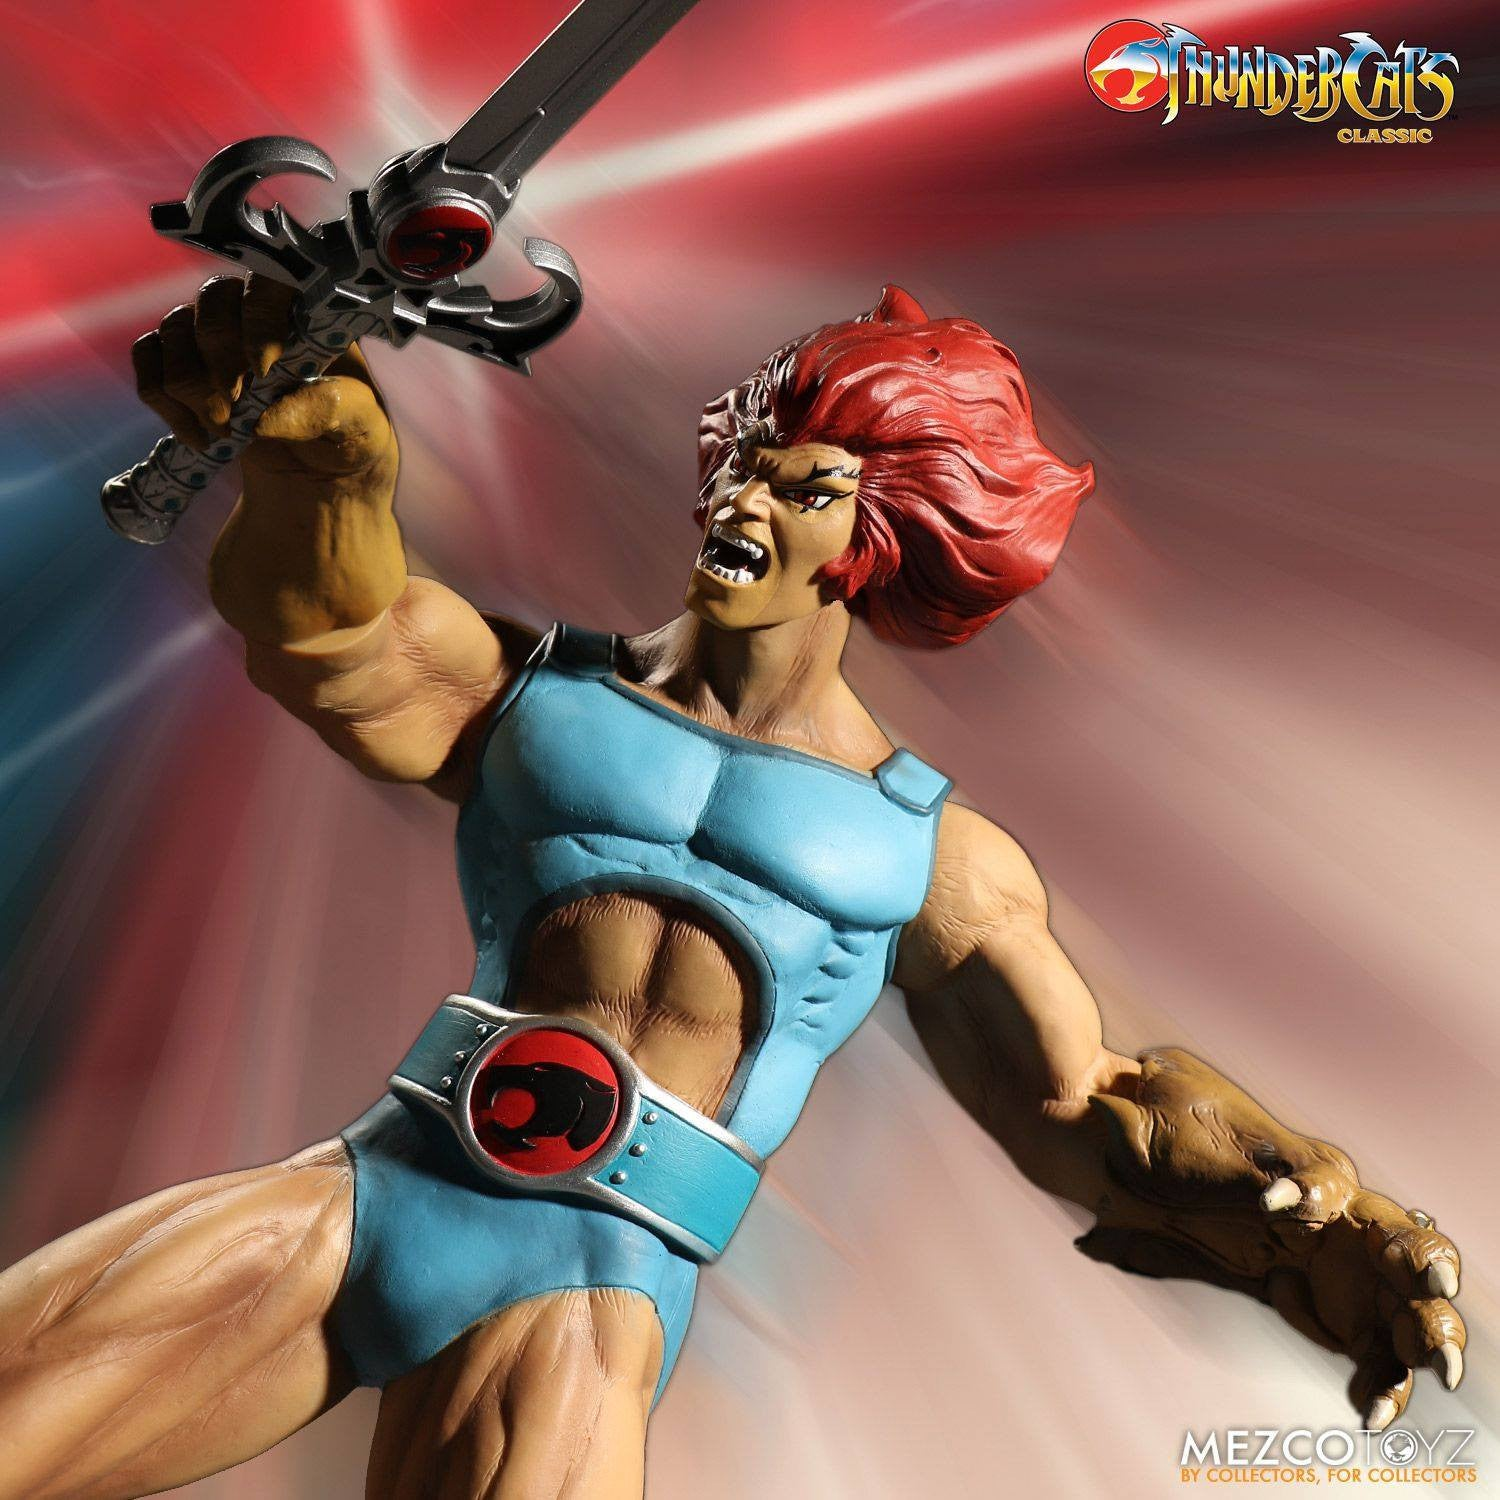 Mezco - Mega Scale - Thundercats - Lion-O Deluxe Edition - Marvelous Toys - 5